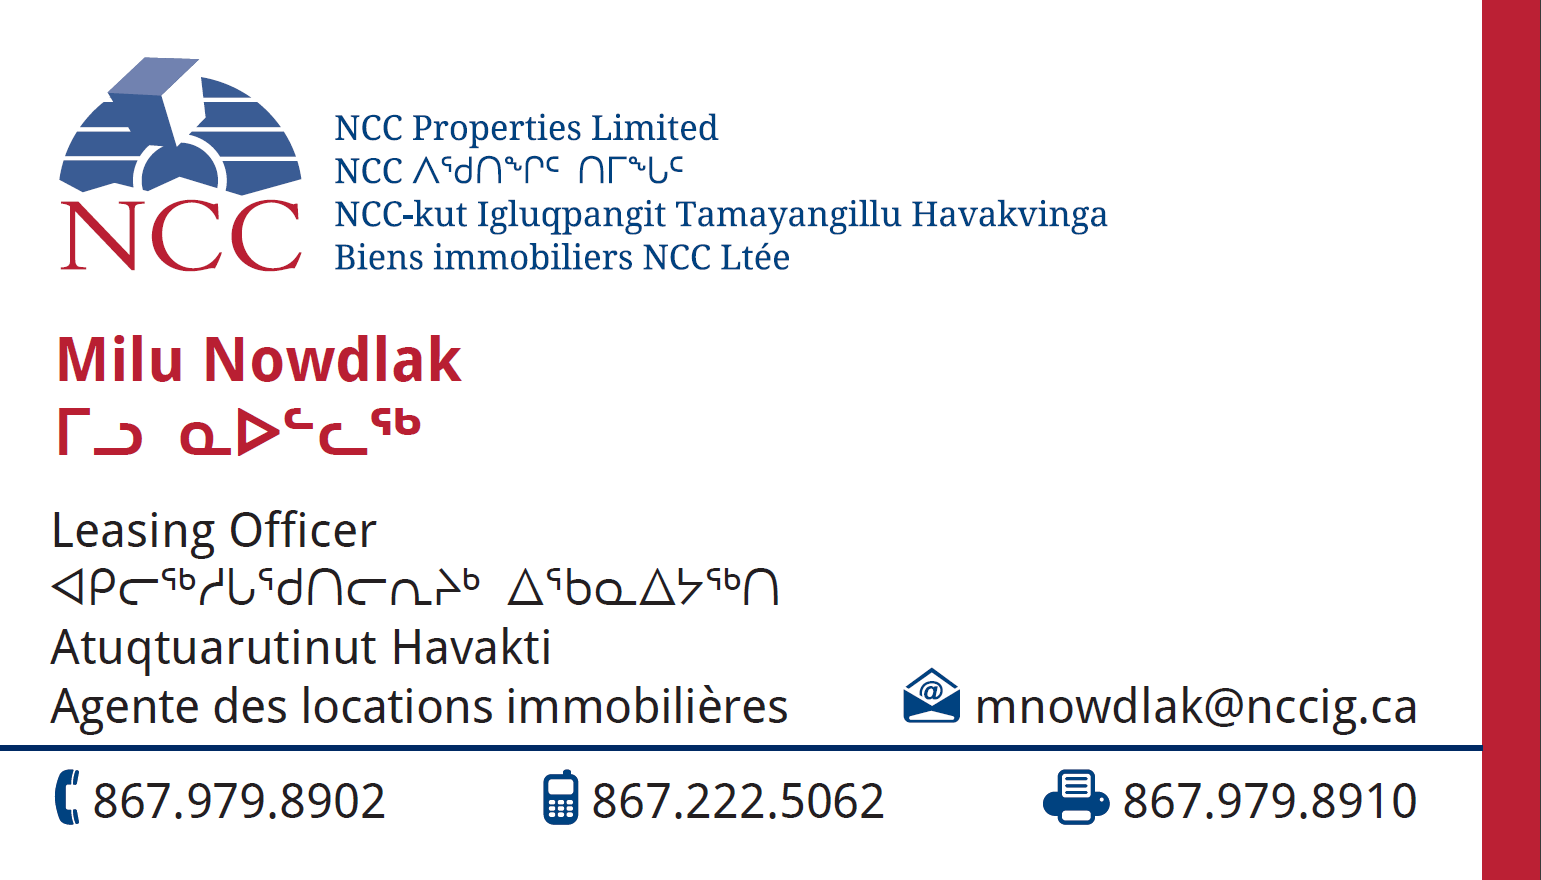 Milu Nowdlak - Leasing Officer